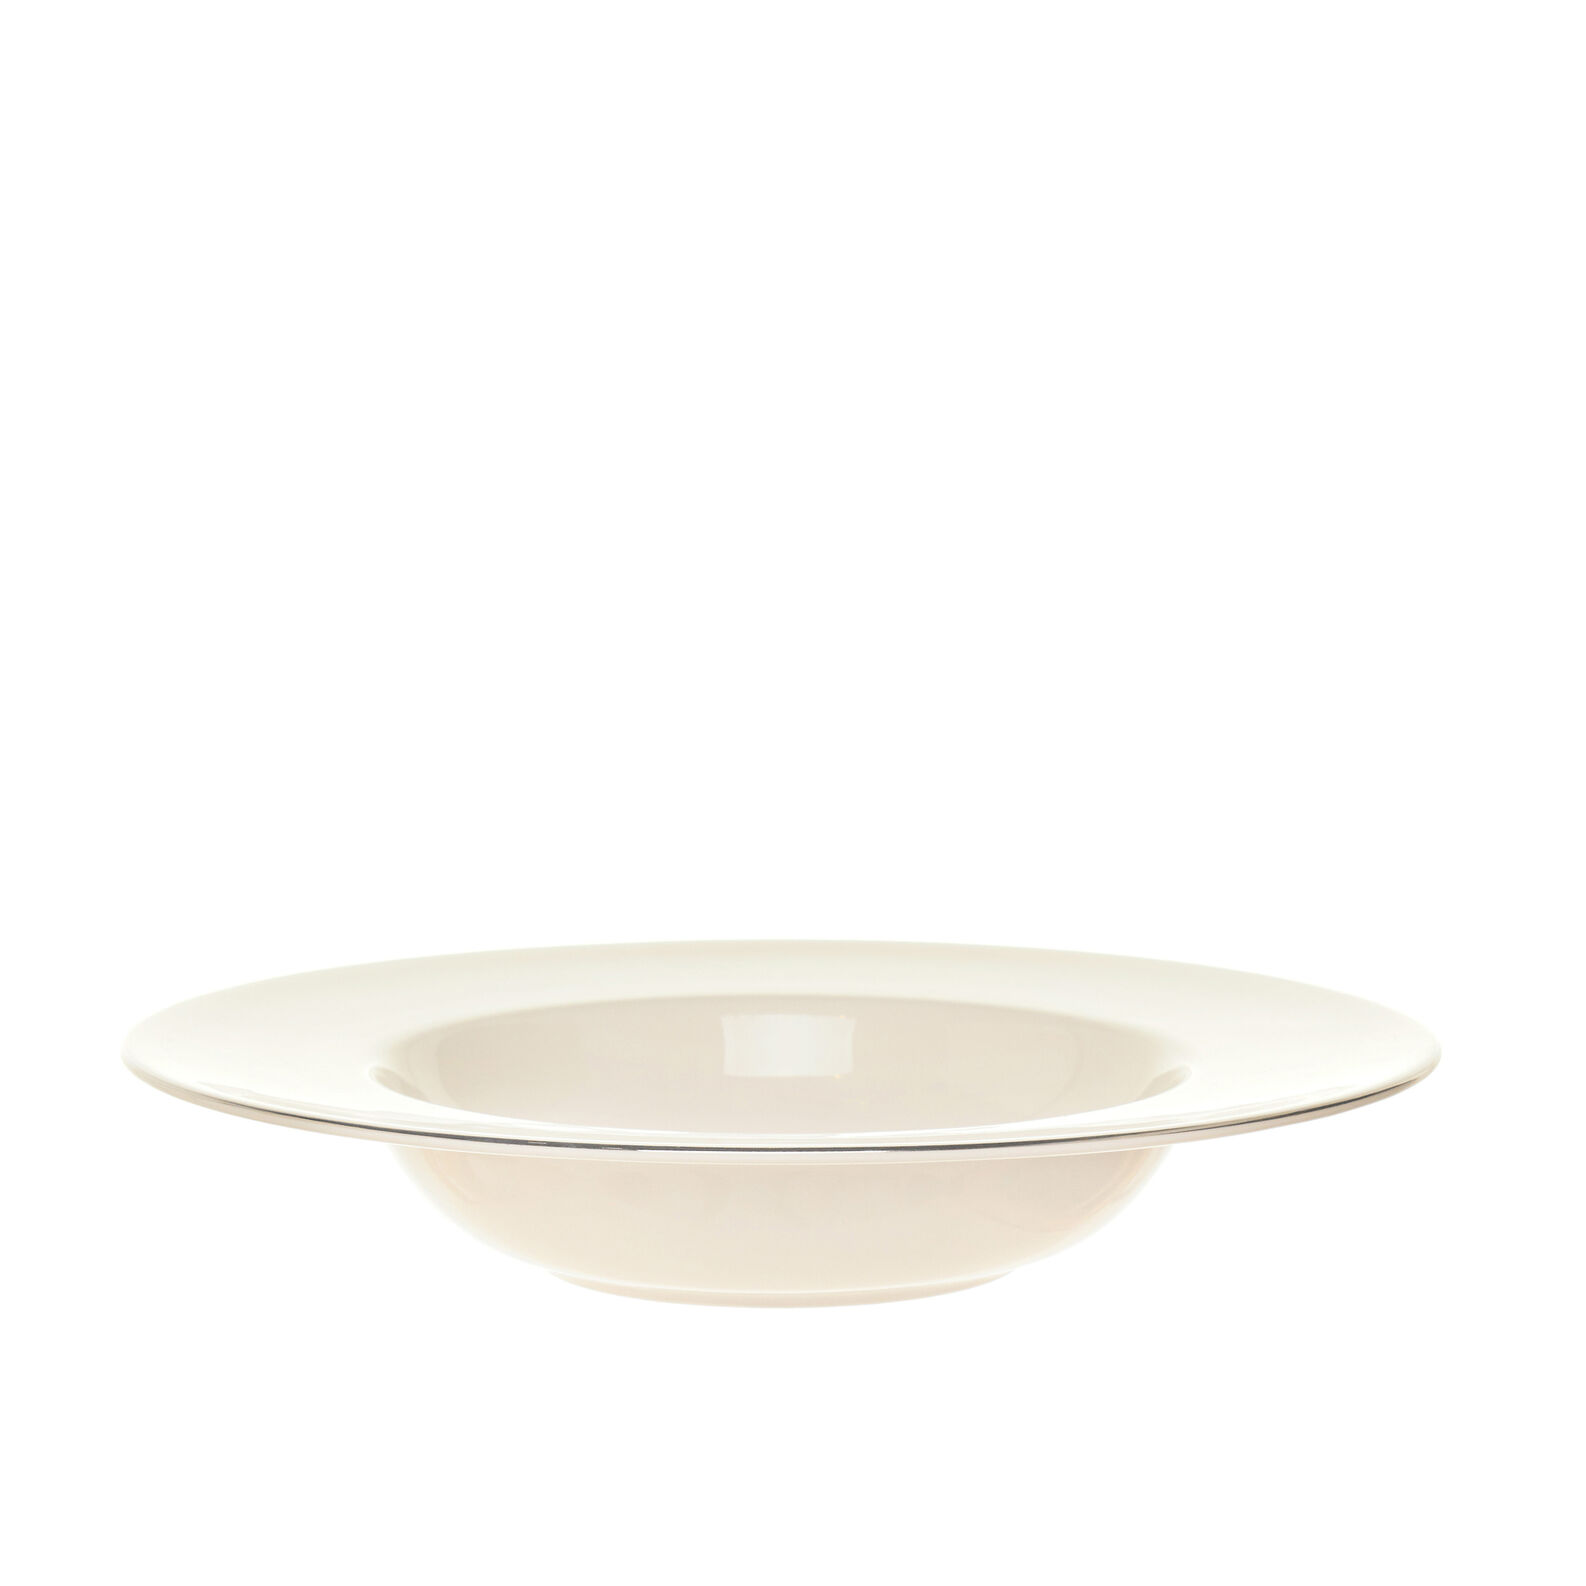 Rome new bone china bowl